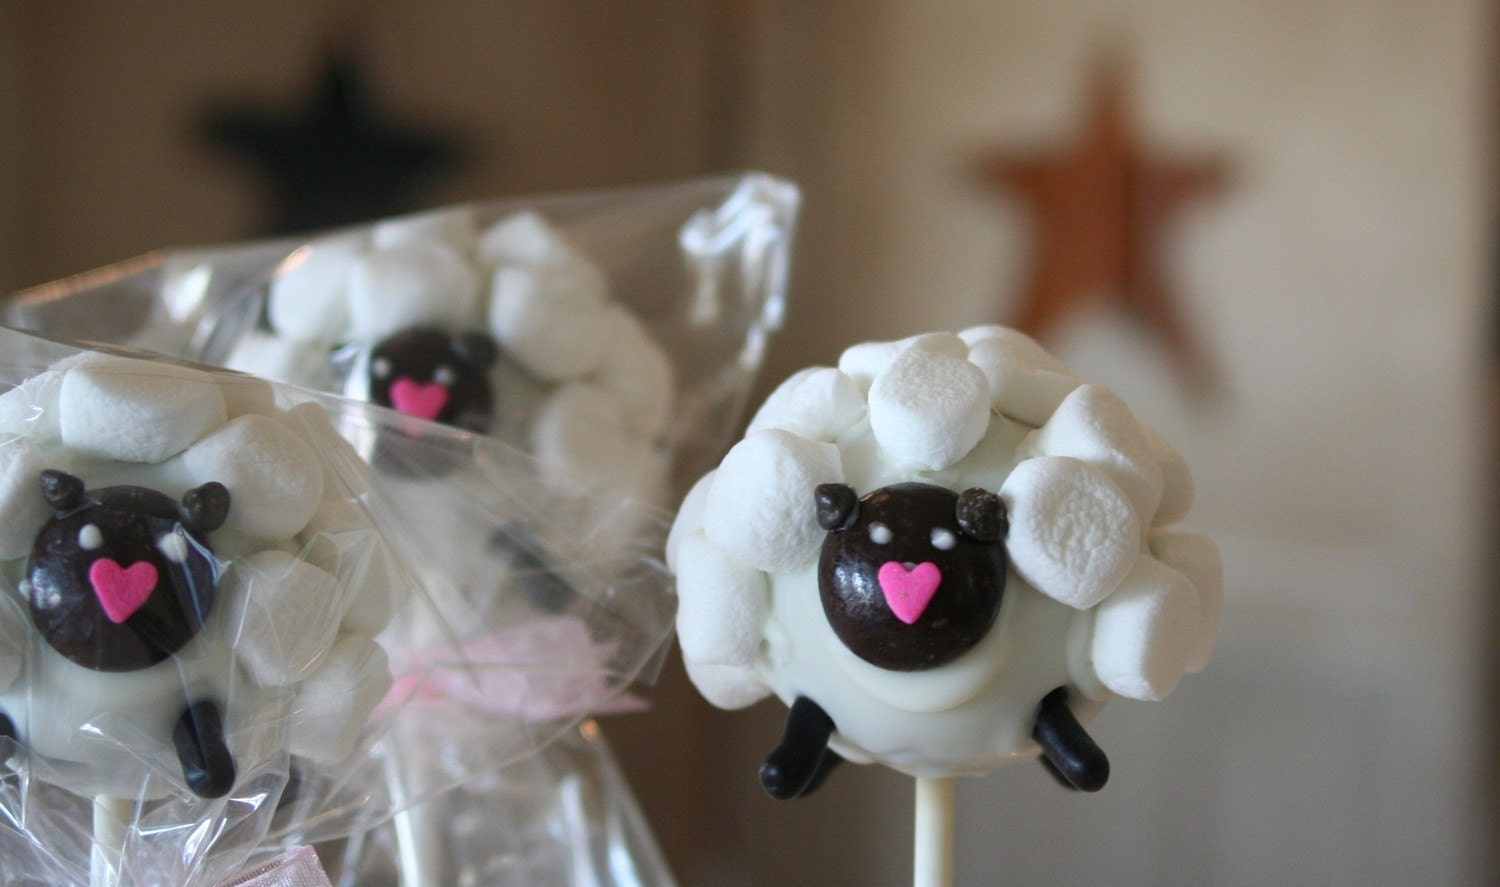 Mom's Killer Cakes & Cookies Sheep Cake Pops Perfect For Easter